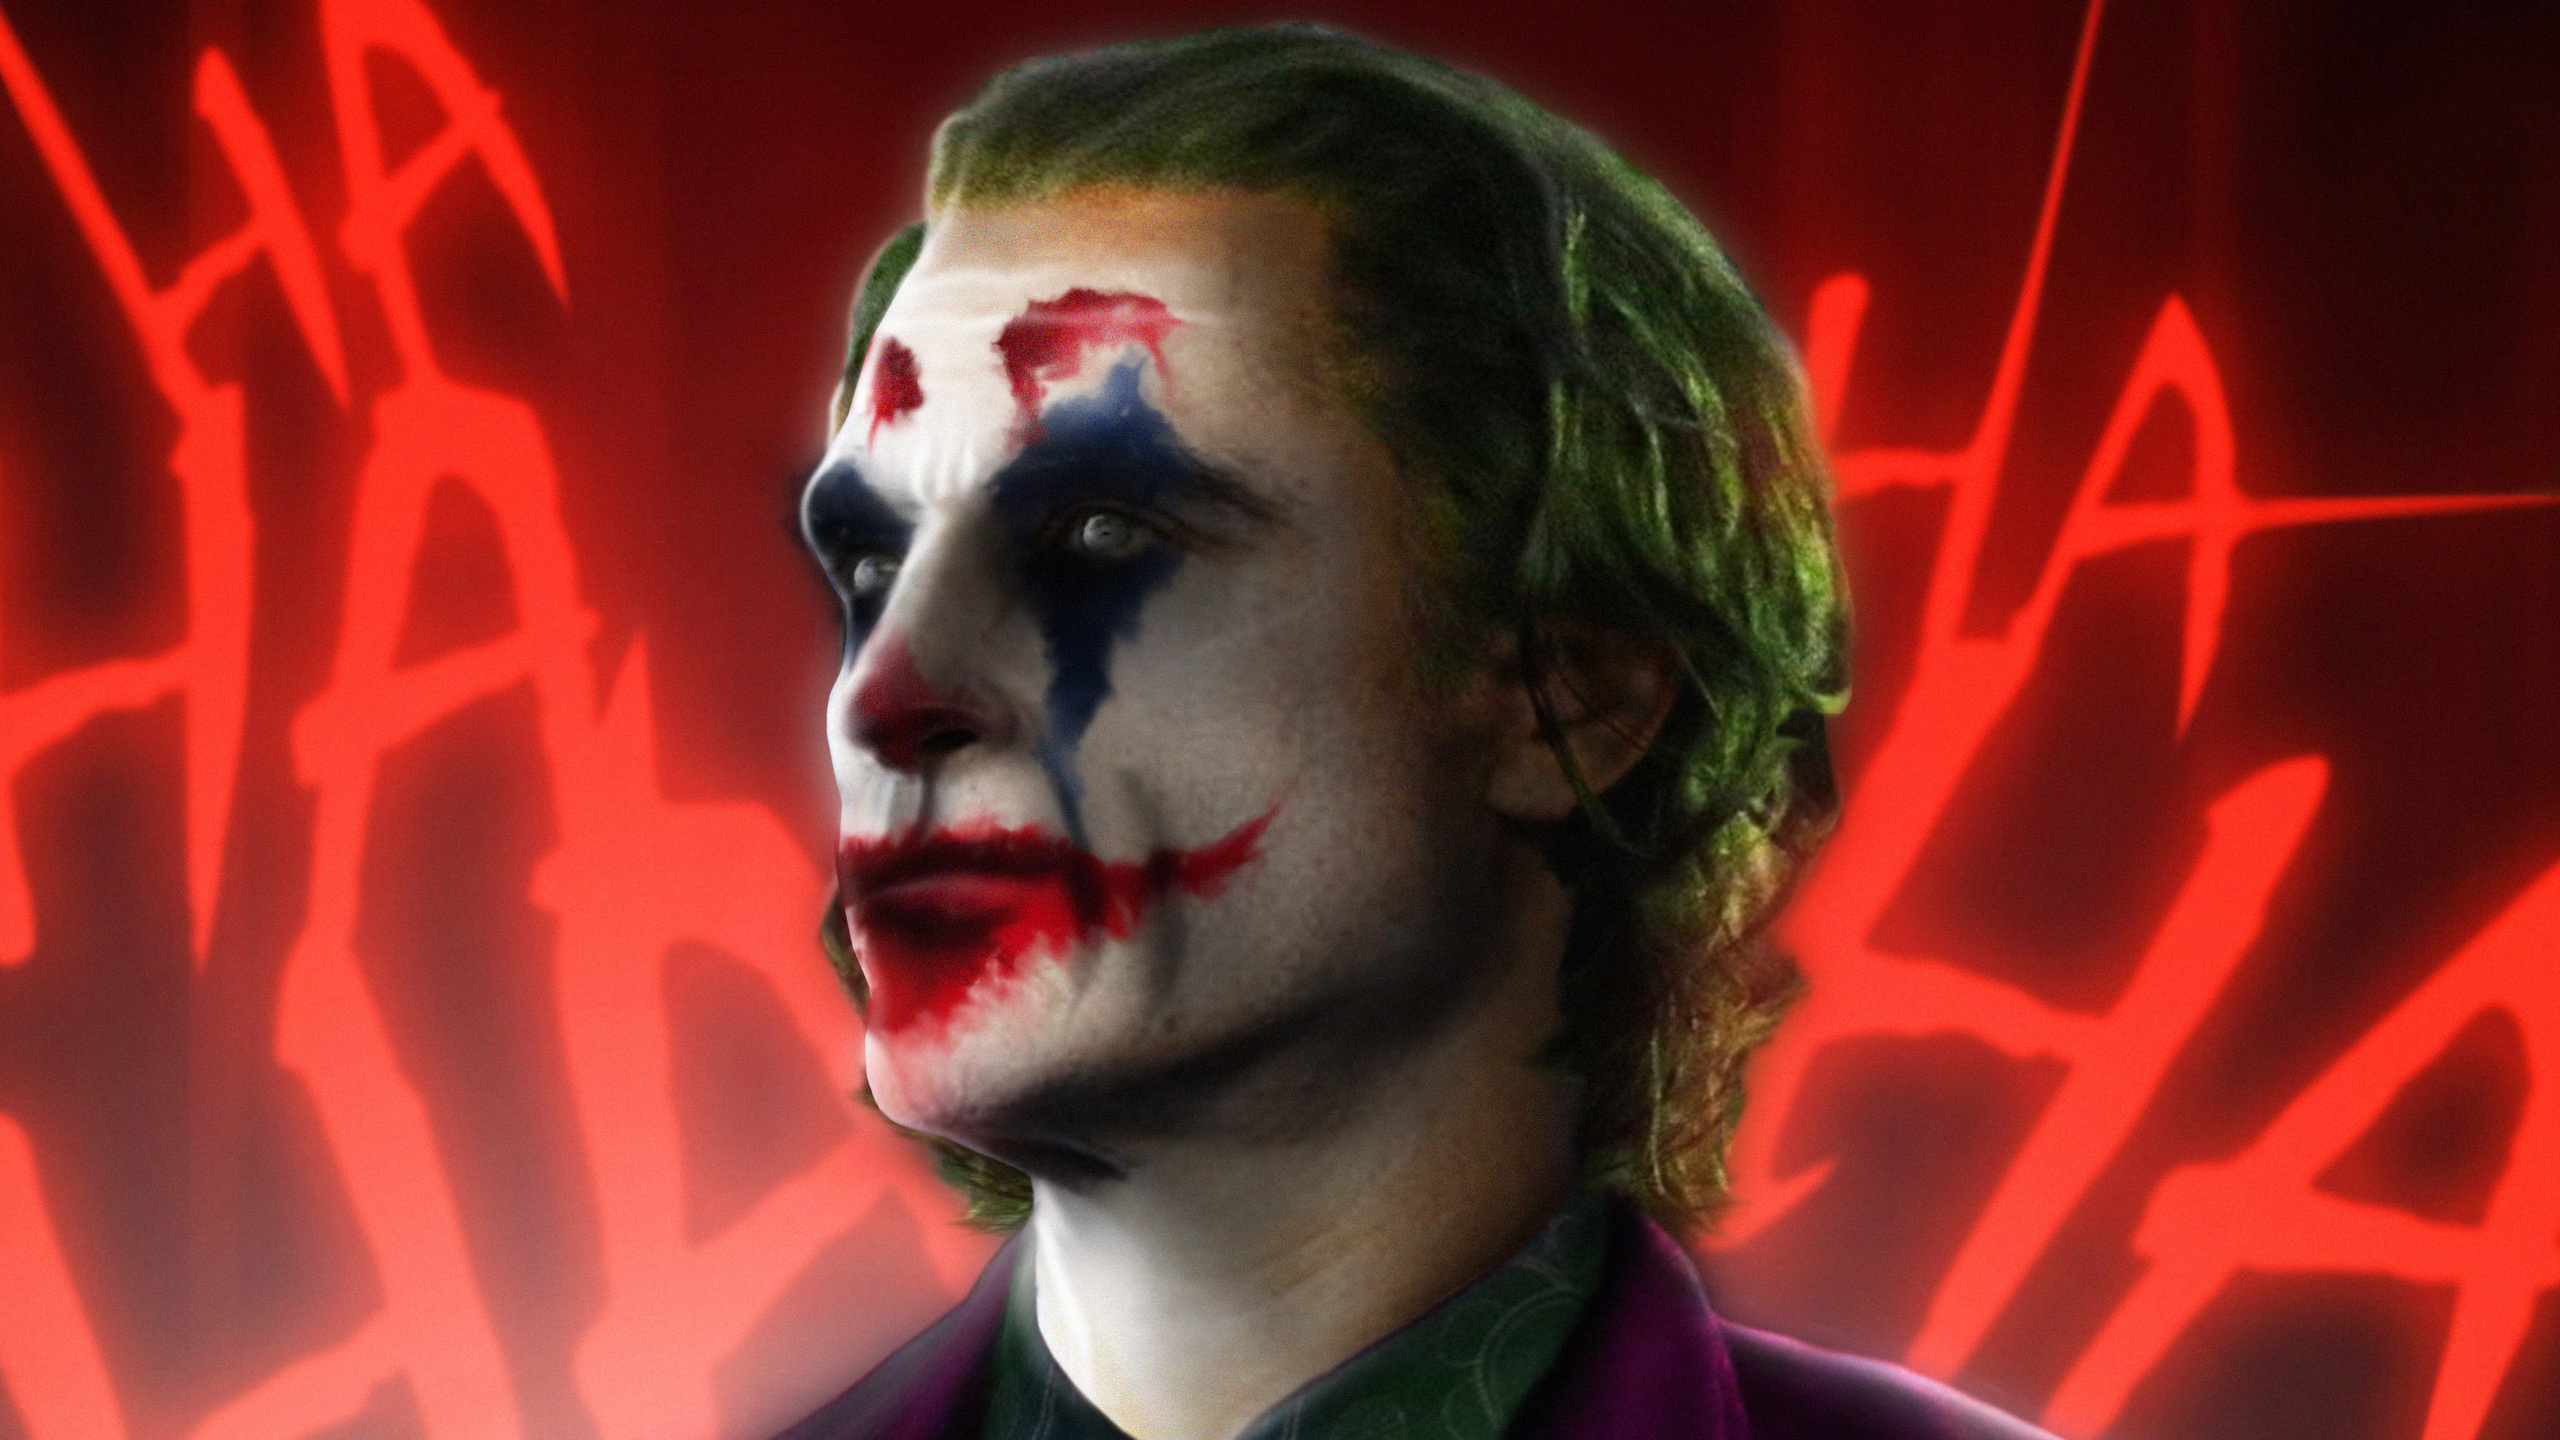 Movie Wallpaper Joker Movie Wallpaper Joaquin Phoenix